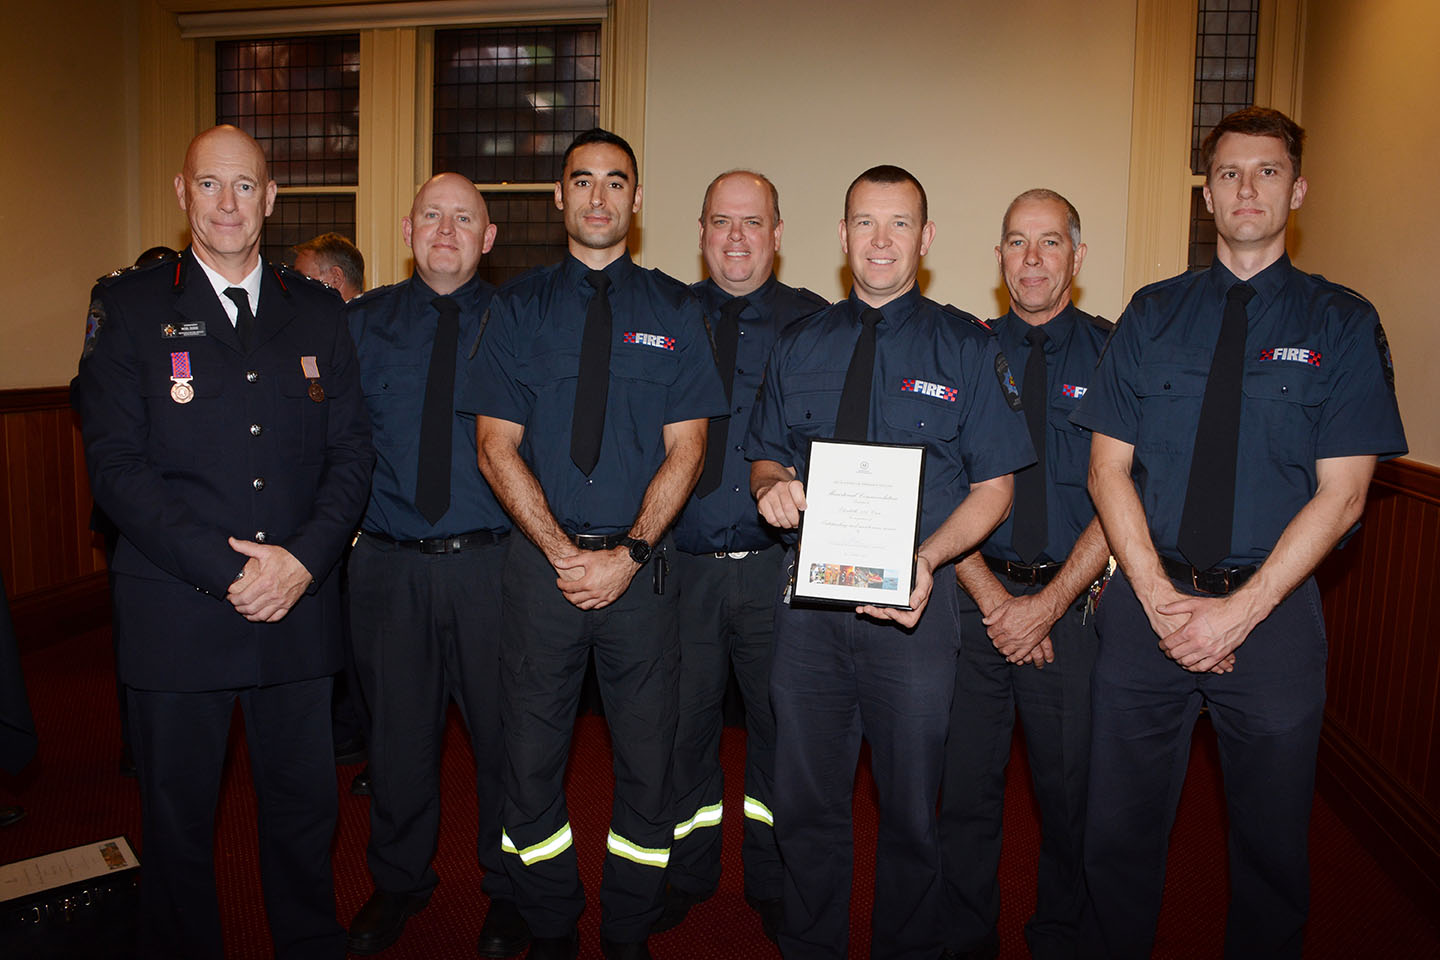 Emergency Services Medal and Commendations - Crew